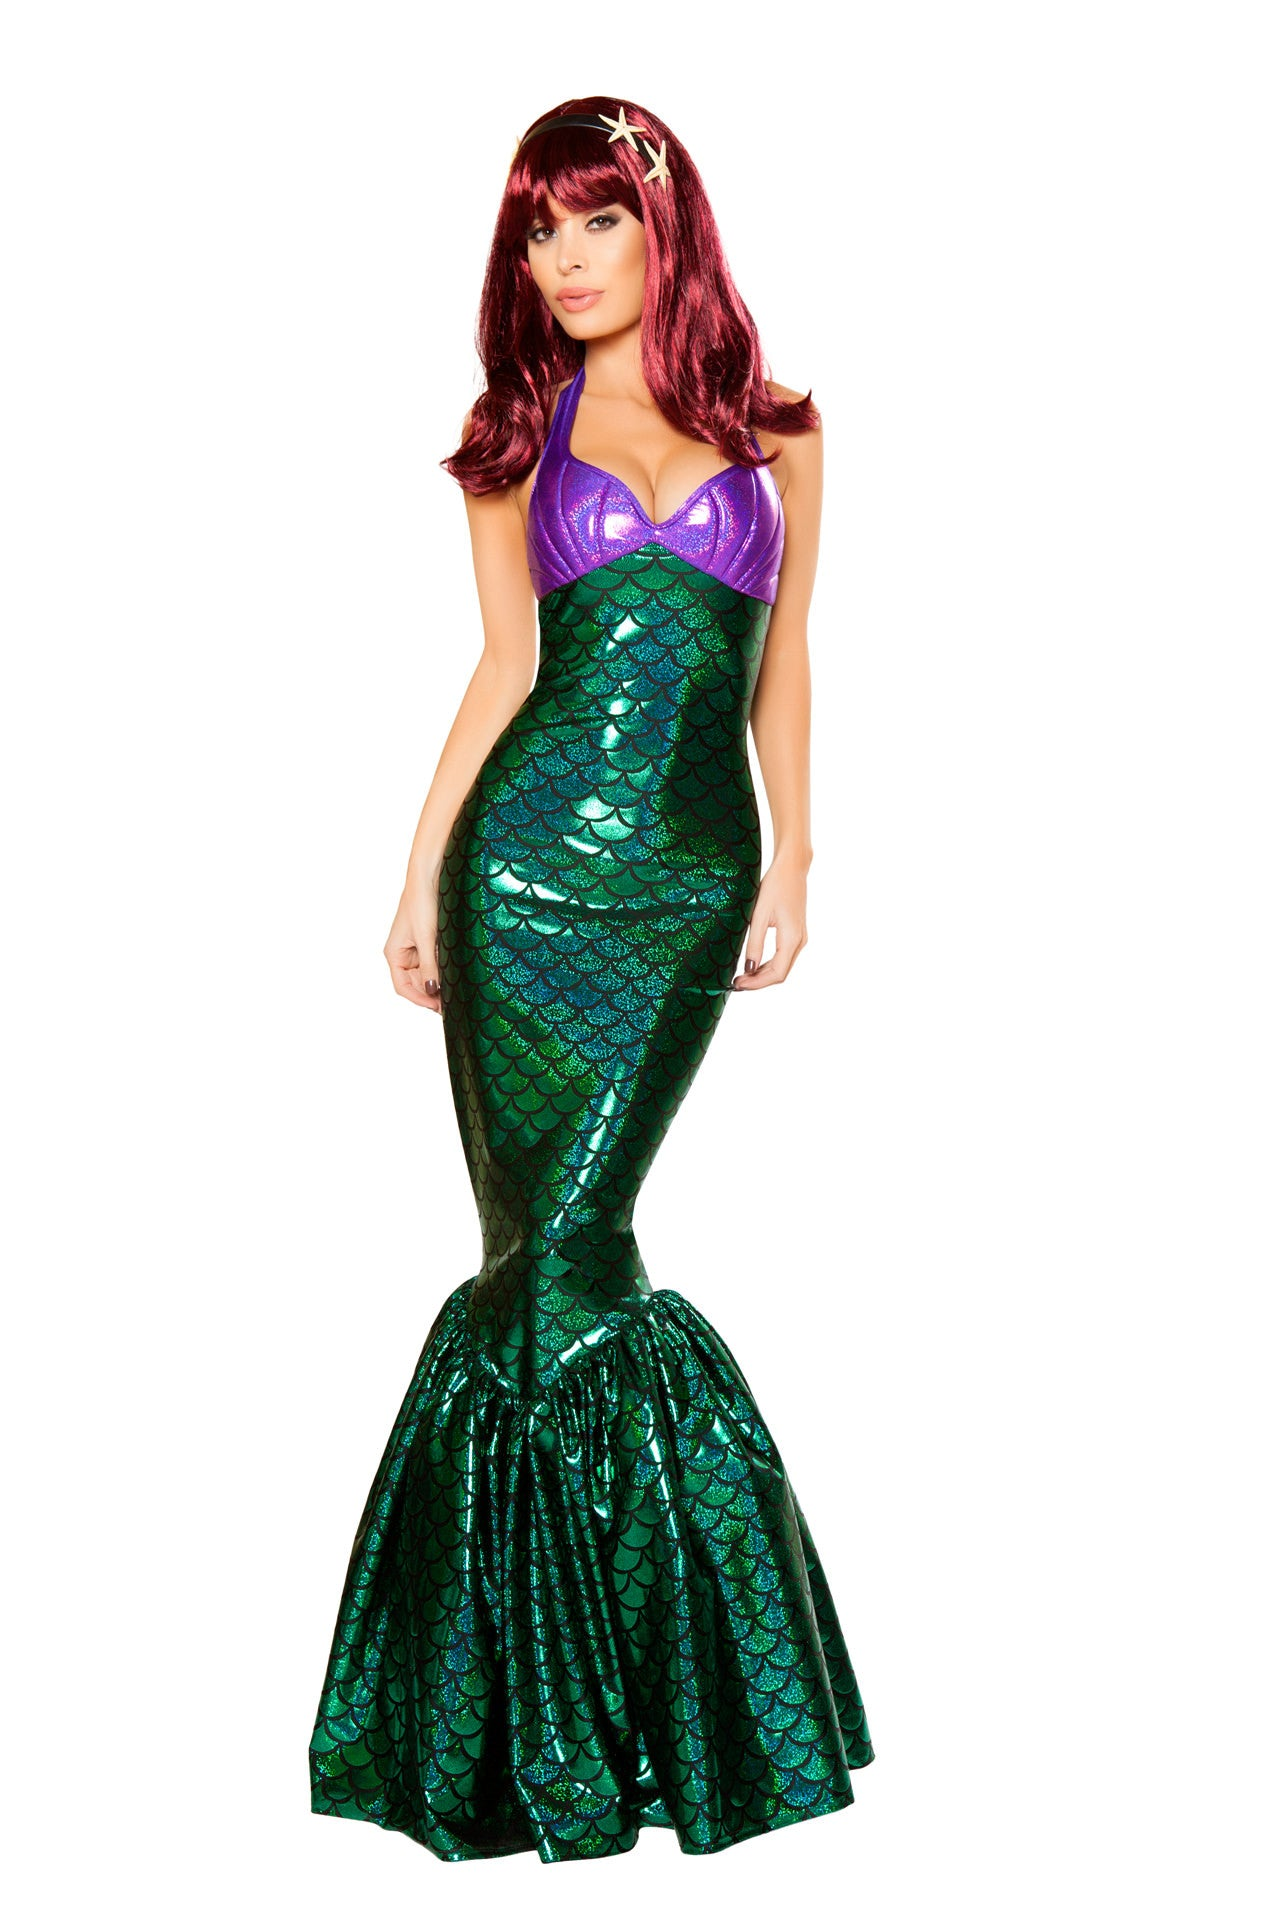 10076 - 1pc Mermaid Temptress ${description} | Roma Costume and Roma Confidential wholesale manufacturer of Women Apparel bulk world wide wholesale and world wide drop ship services for Adult Halloween Costumes, Sexy and Elegant Lingerie, Rave Clothing, Club wear, and Christmas Costumes. Costumes, Roma Costume, Inc., Roma Costume, Roma Confidential, Wholesale clothing, drop ship, drop ship service, Wholesale Lingerie, Wholesale Adult Halloween Costumes, Rave Clothing, EDM Clothing, Festival Wear, Christmas Costumes, Clubwear, Club wear.